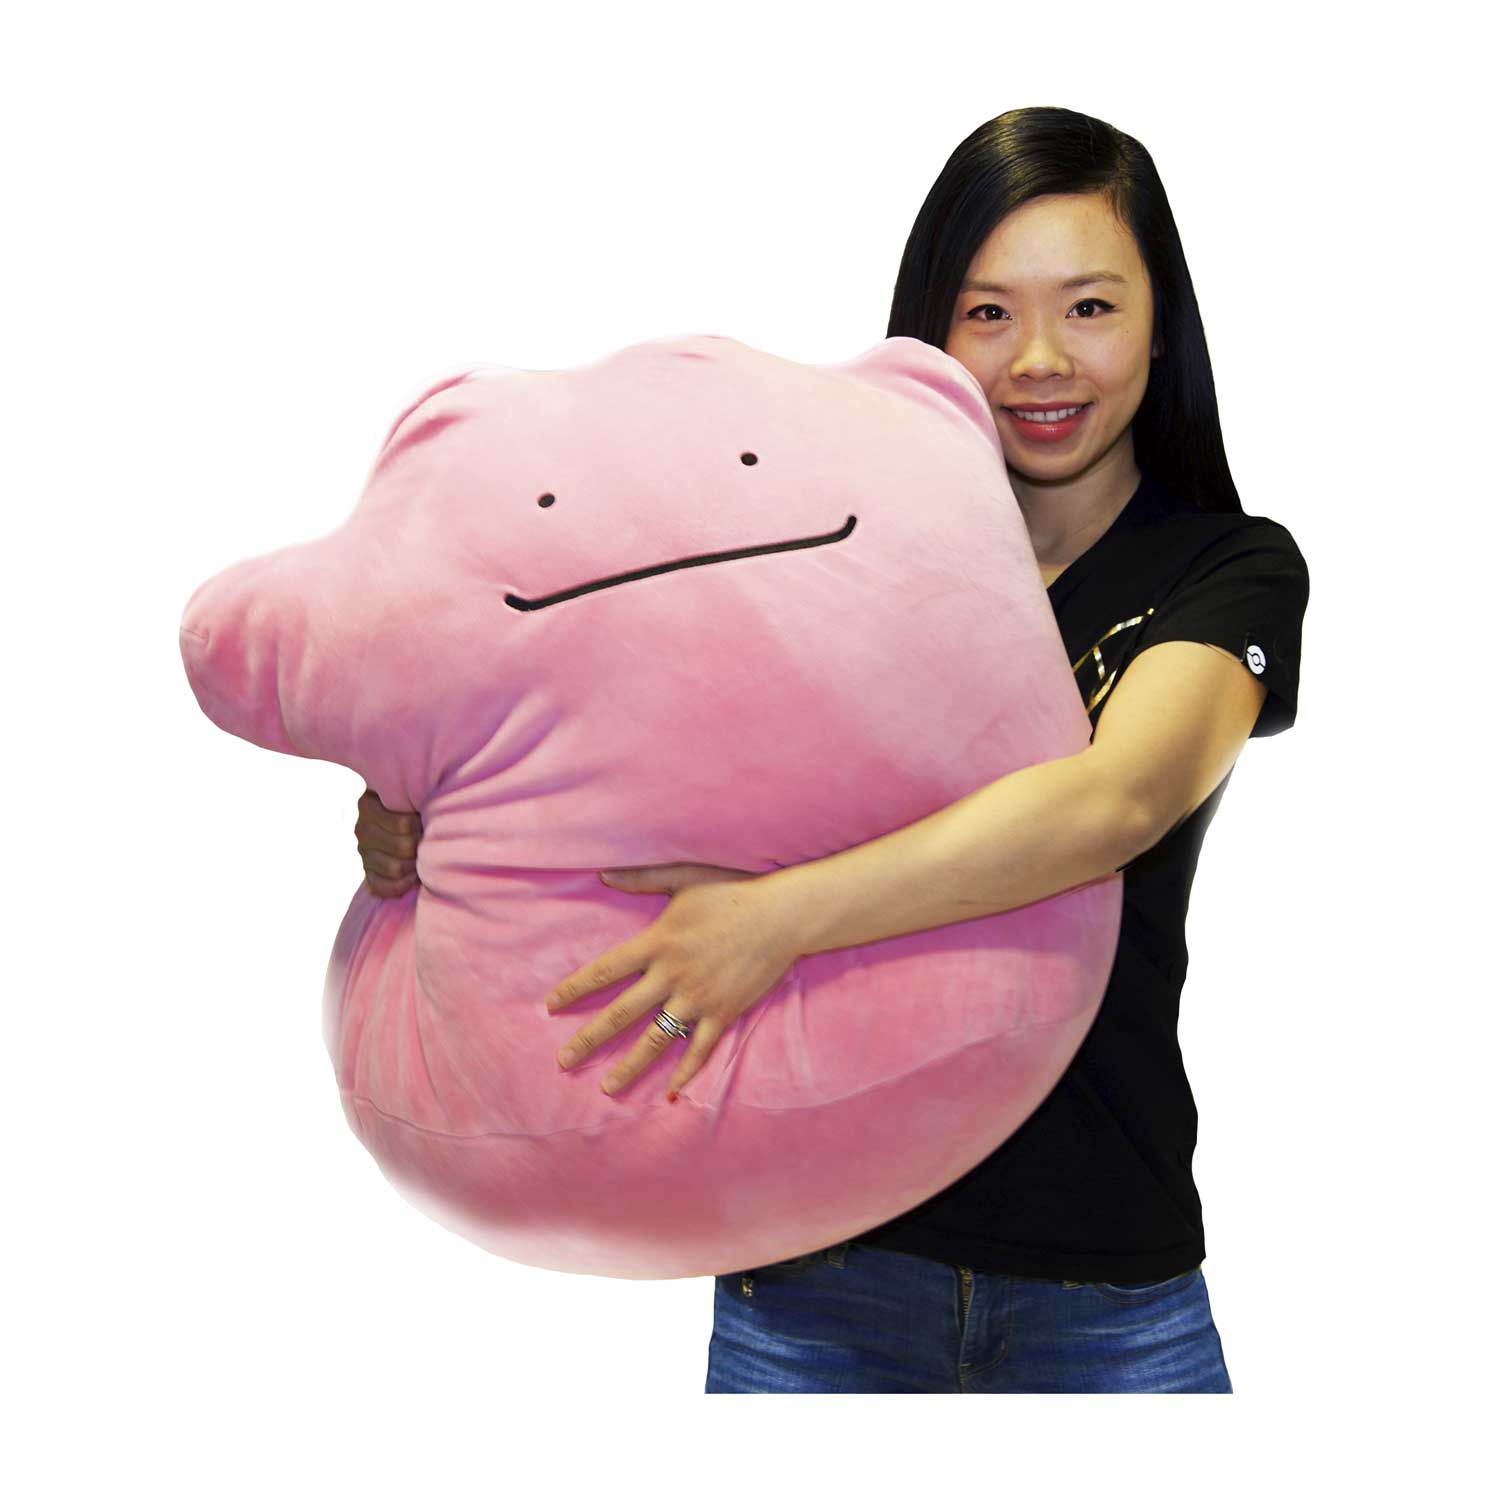 5166dc2b ... Image for Ditto Large Cushion - 25 In. from Pokemon Center.  _5_3074457345618259663_3074457345618262055_3074457345618268804